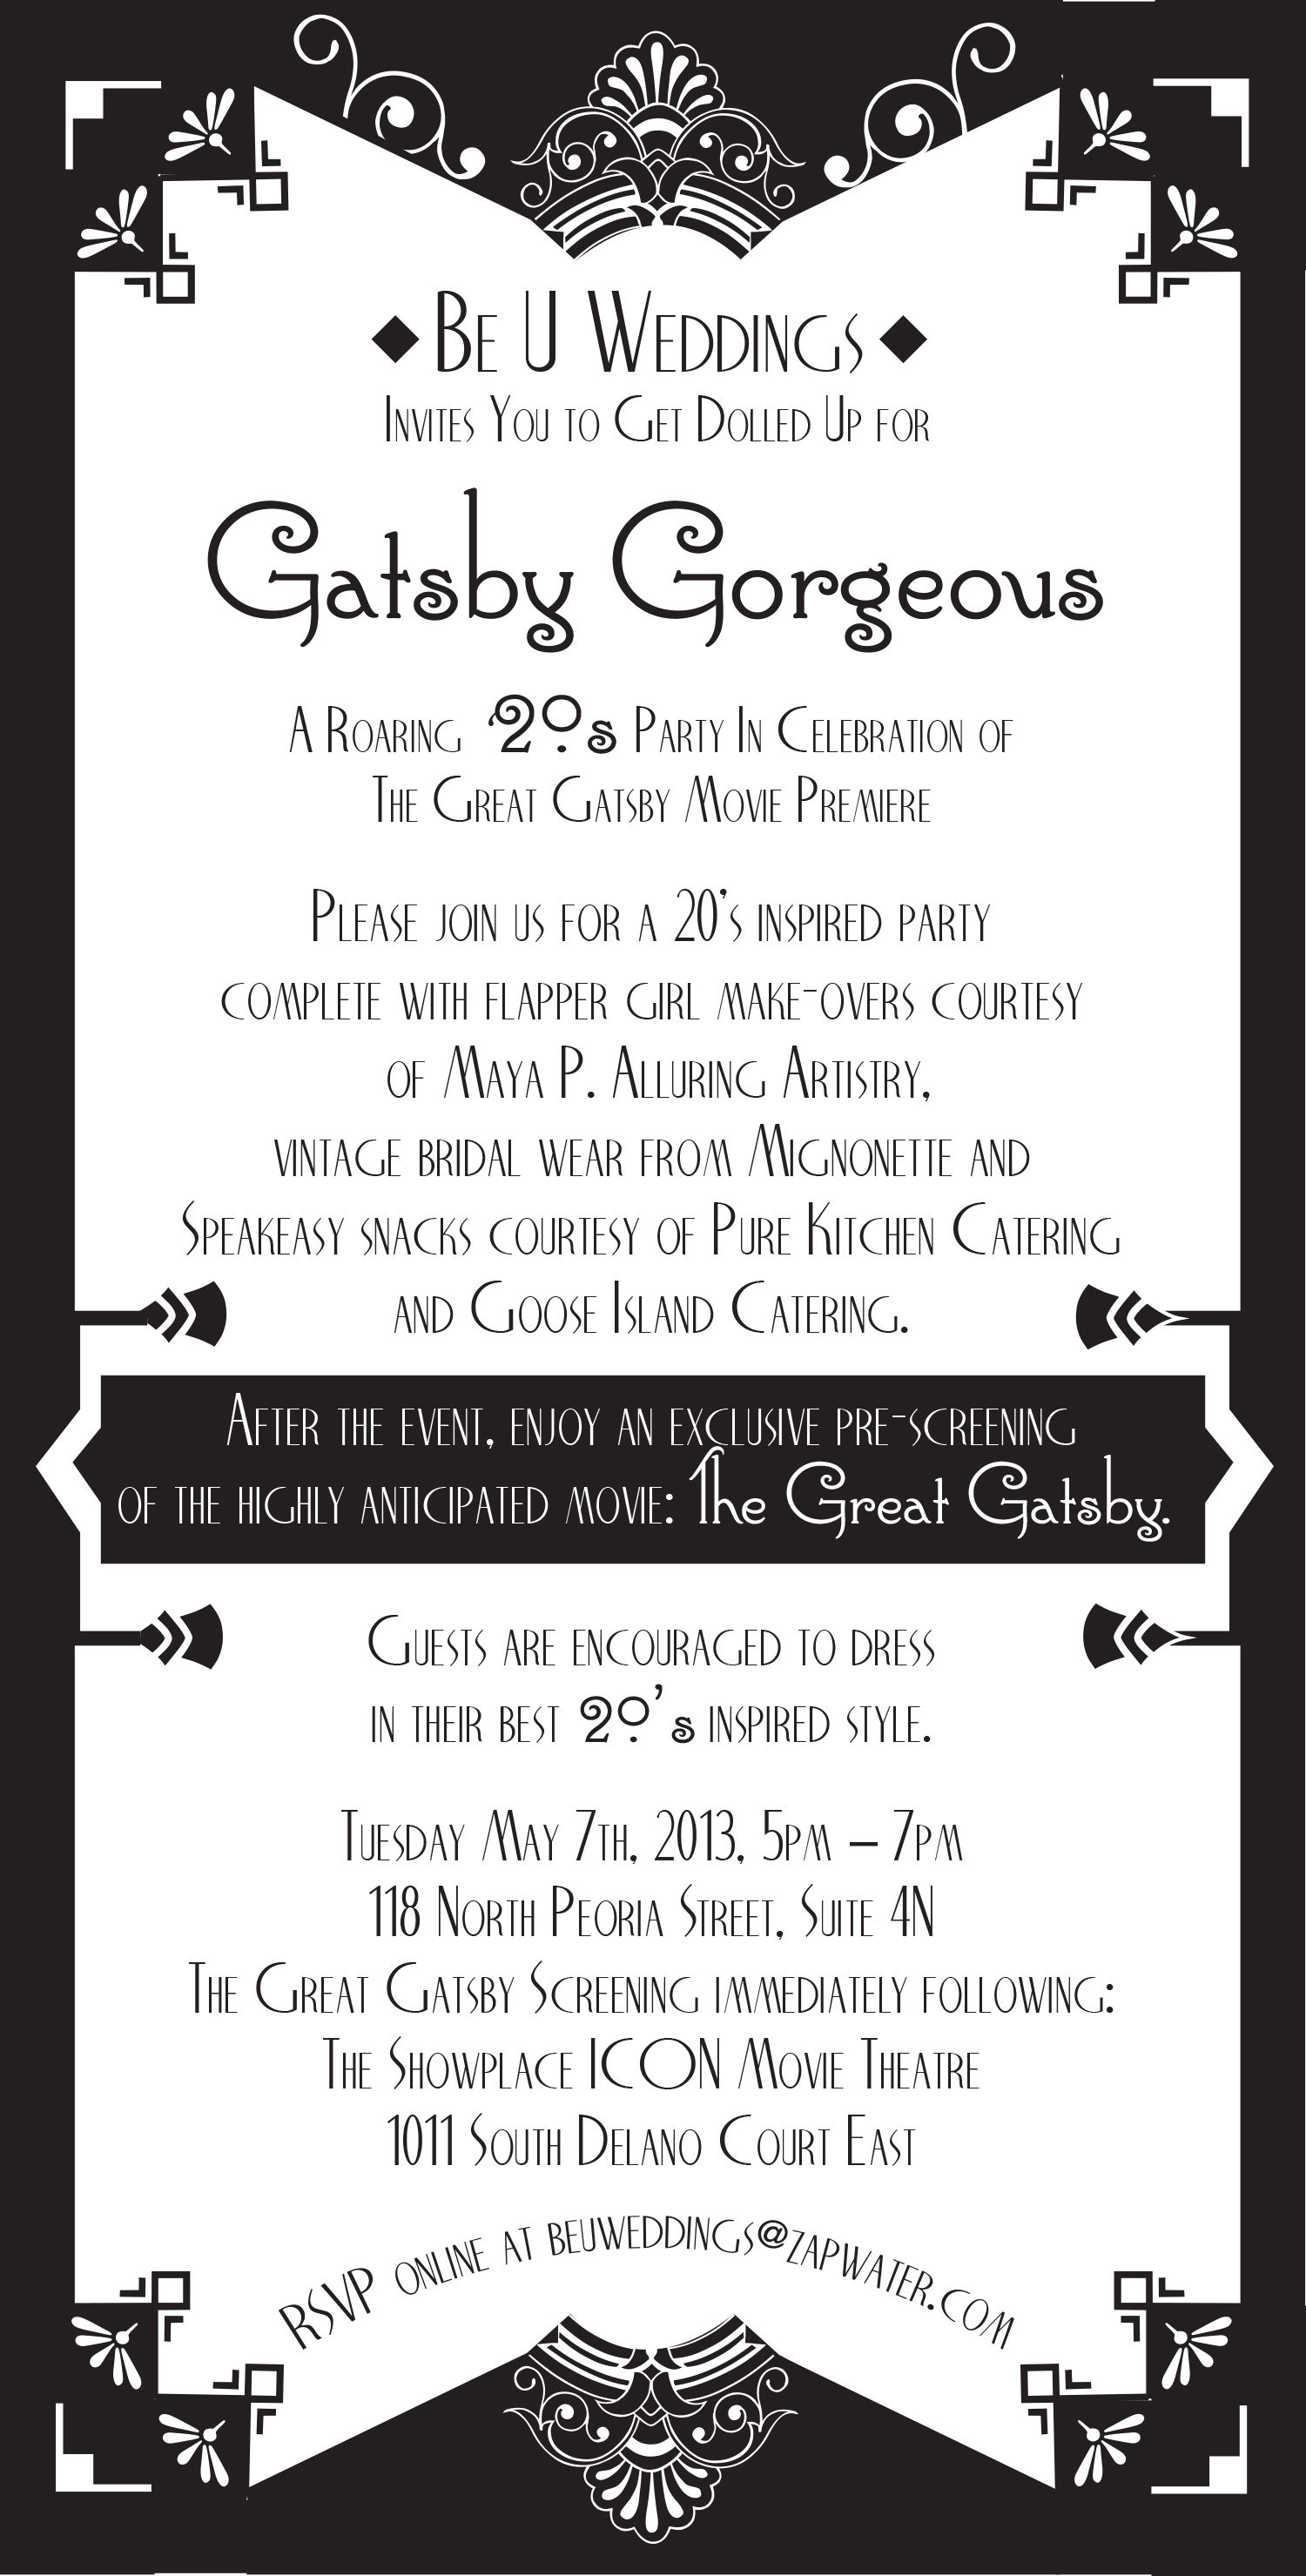 Gatsby themed party invitation party invitation wording gatsby themed party invitation party invitation wording samples also great gatsby party stopboris